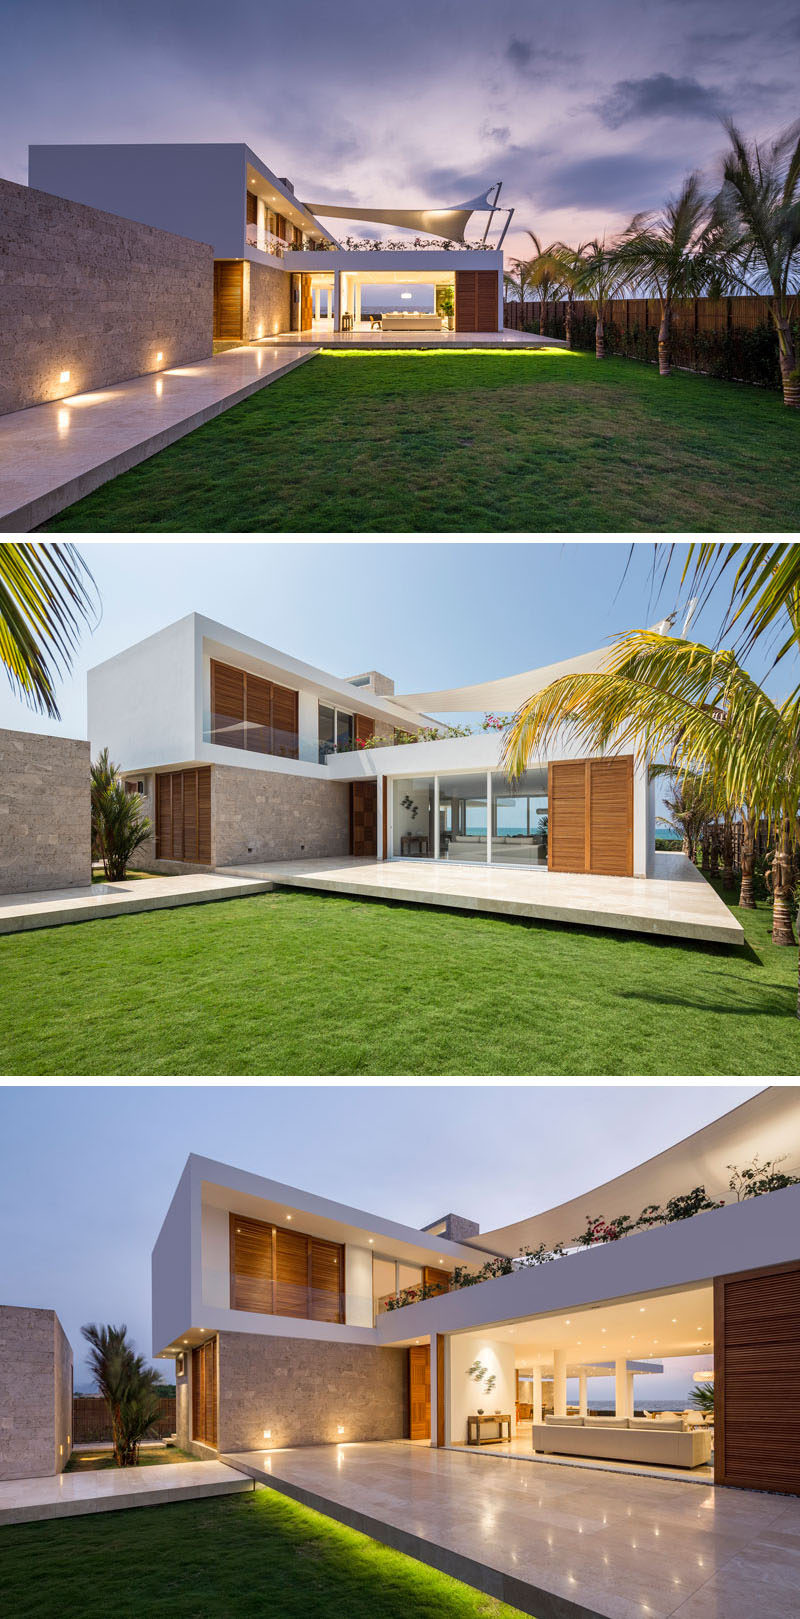 Beach Home Design beach homes designs amusing beachfront home designs This Modern Beach House Has A Stone Walkway That Brings You To The Front Of The